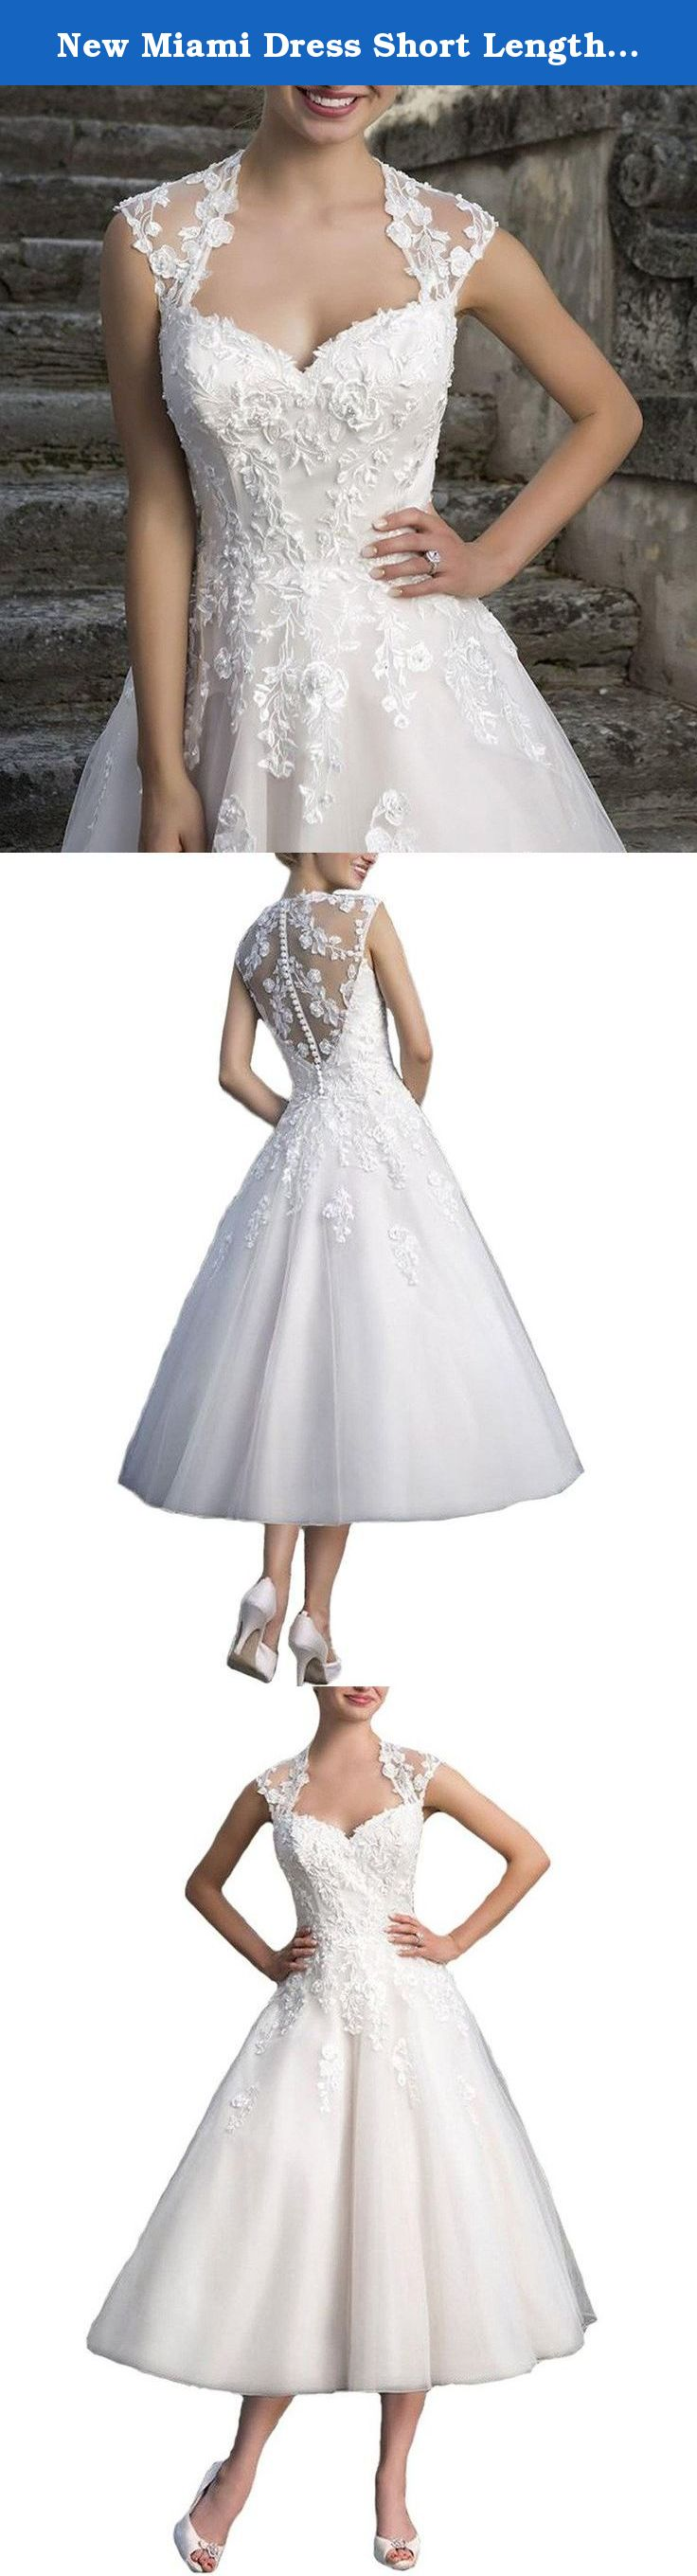 New miami dress short length strap ball gown wedding dresses for